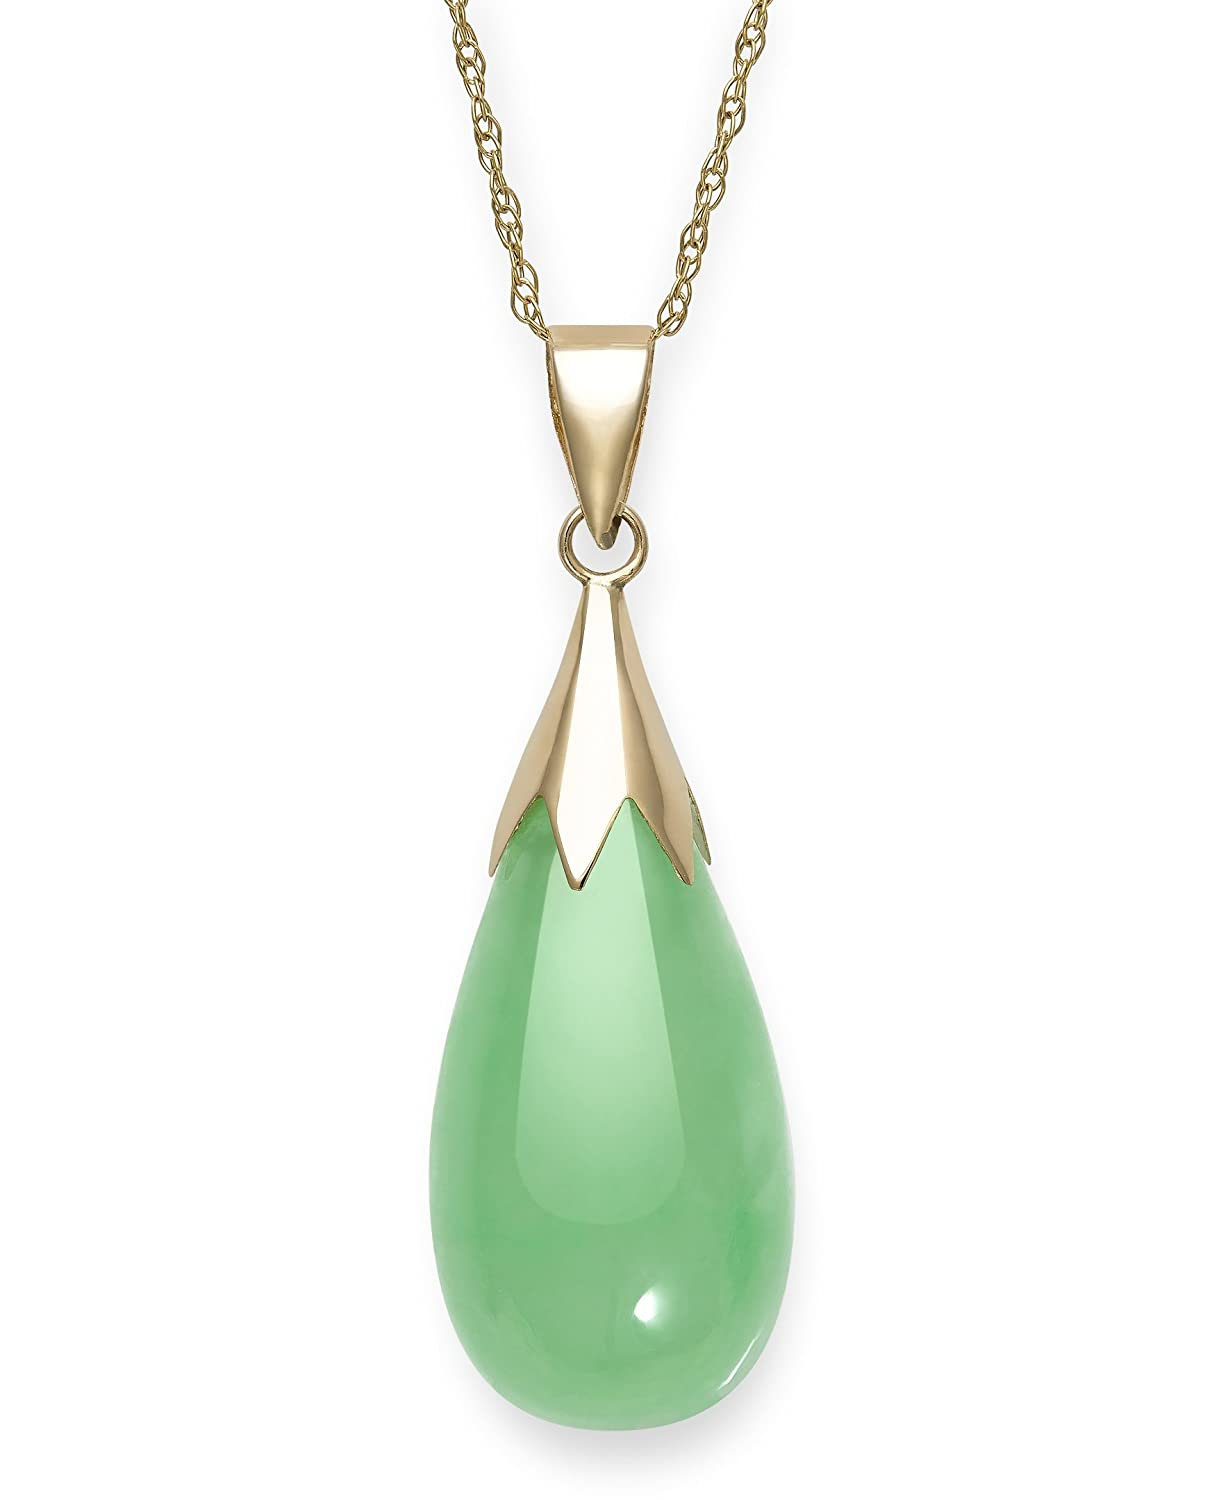 Natural Green Jade Teardrop Pendant Chain Necklace in 10K Gold,18 18 Belacqua P-5999Y10-AM